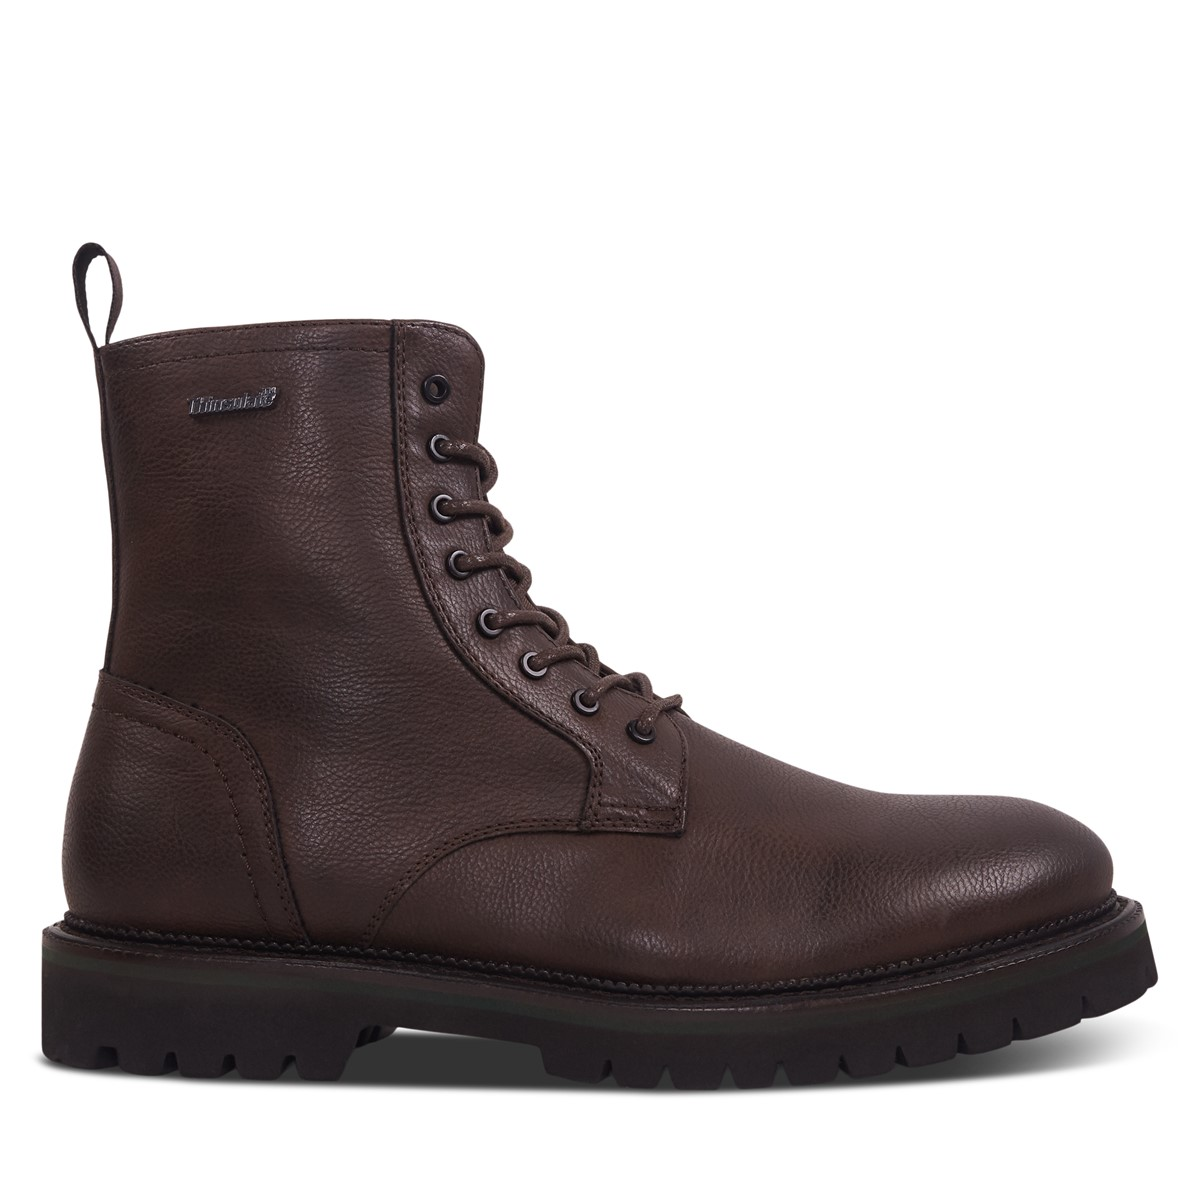 Men's Theo Lace Up Boots in Brown